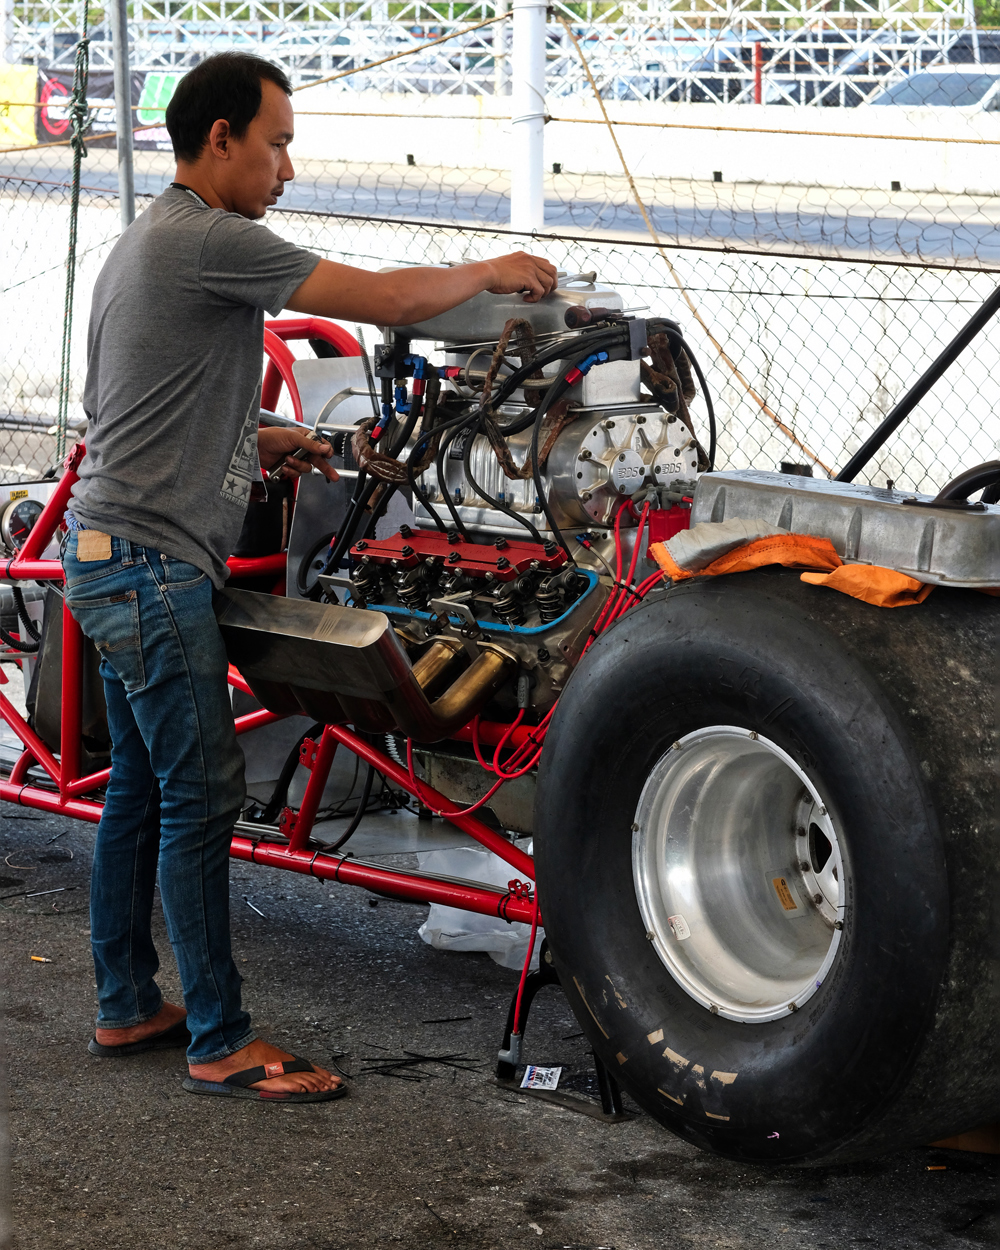 Dr Jeff Harper Photo Blog: The State Of Thai Drag Racing